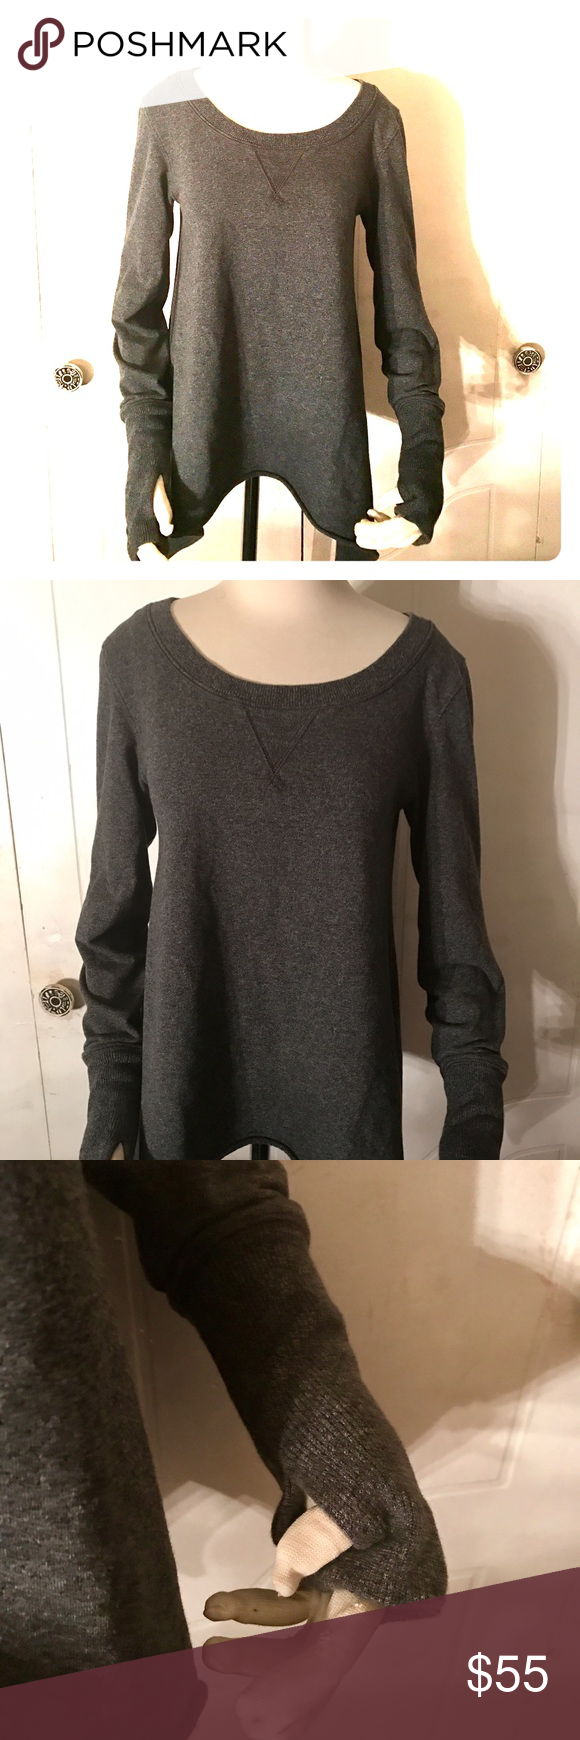 Lululemon asymmetrical hem pullover sz 4 THE sweater you'll just want to live in forever. Super comfortable with thumb holes. Pair with your favorite leggings and sneakers for a chic comfy look lululemon athletica Sweaters